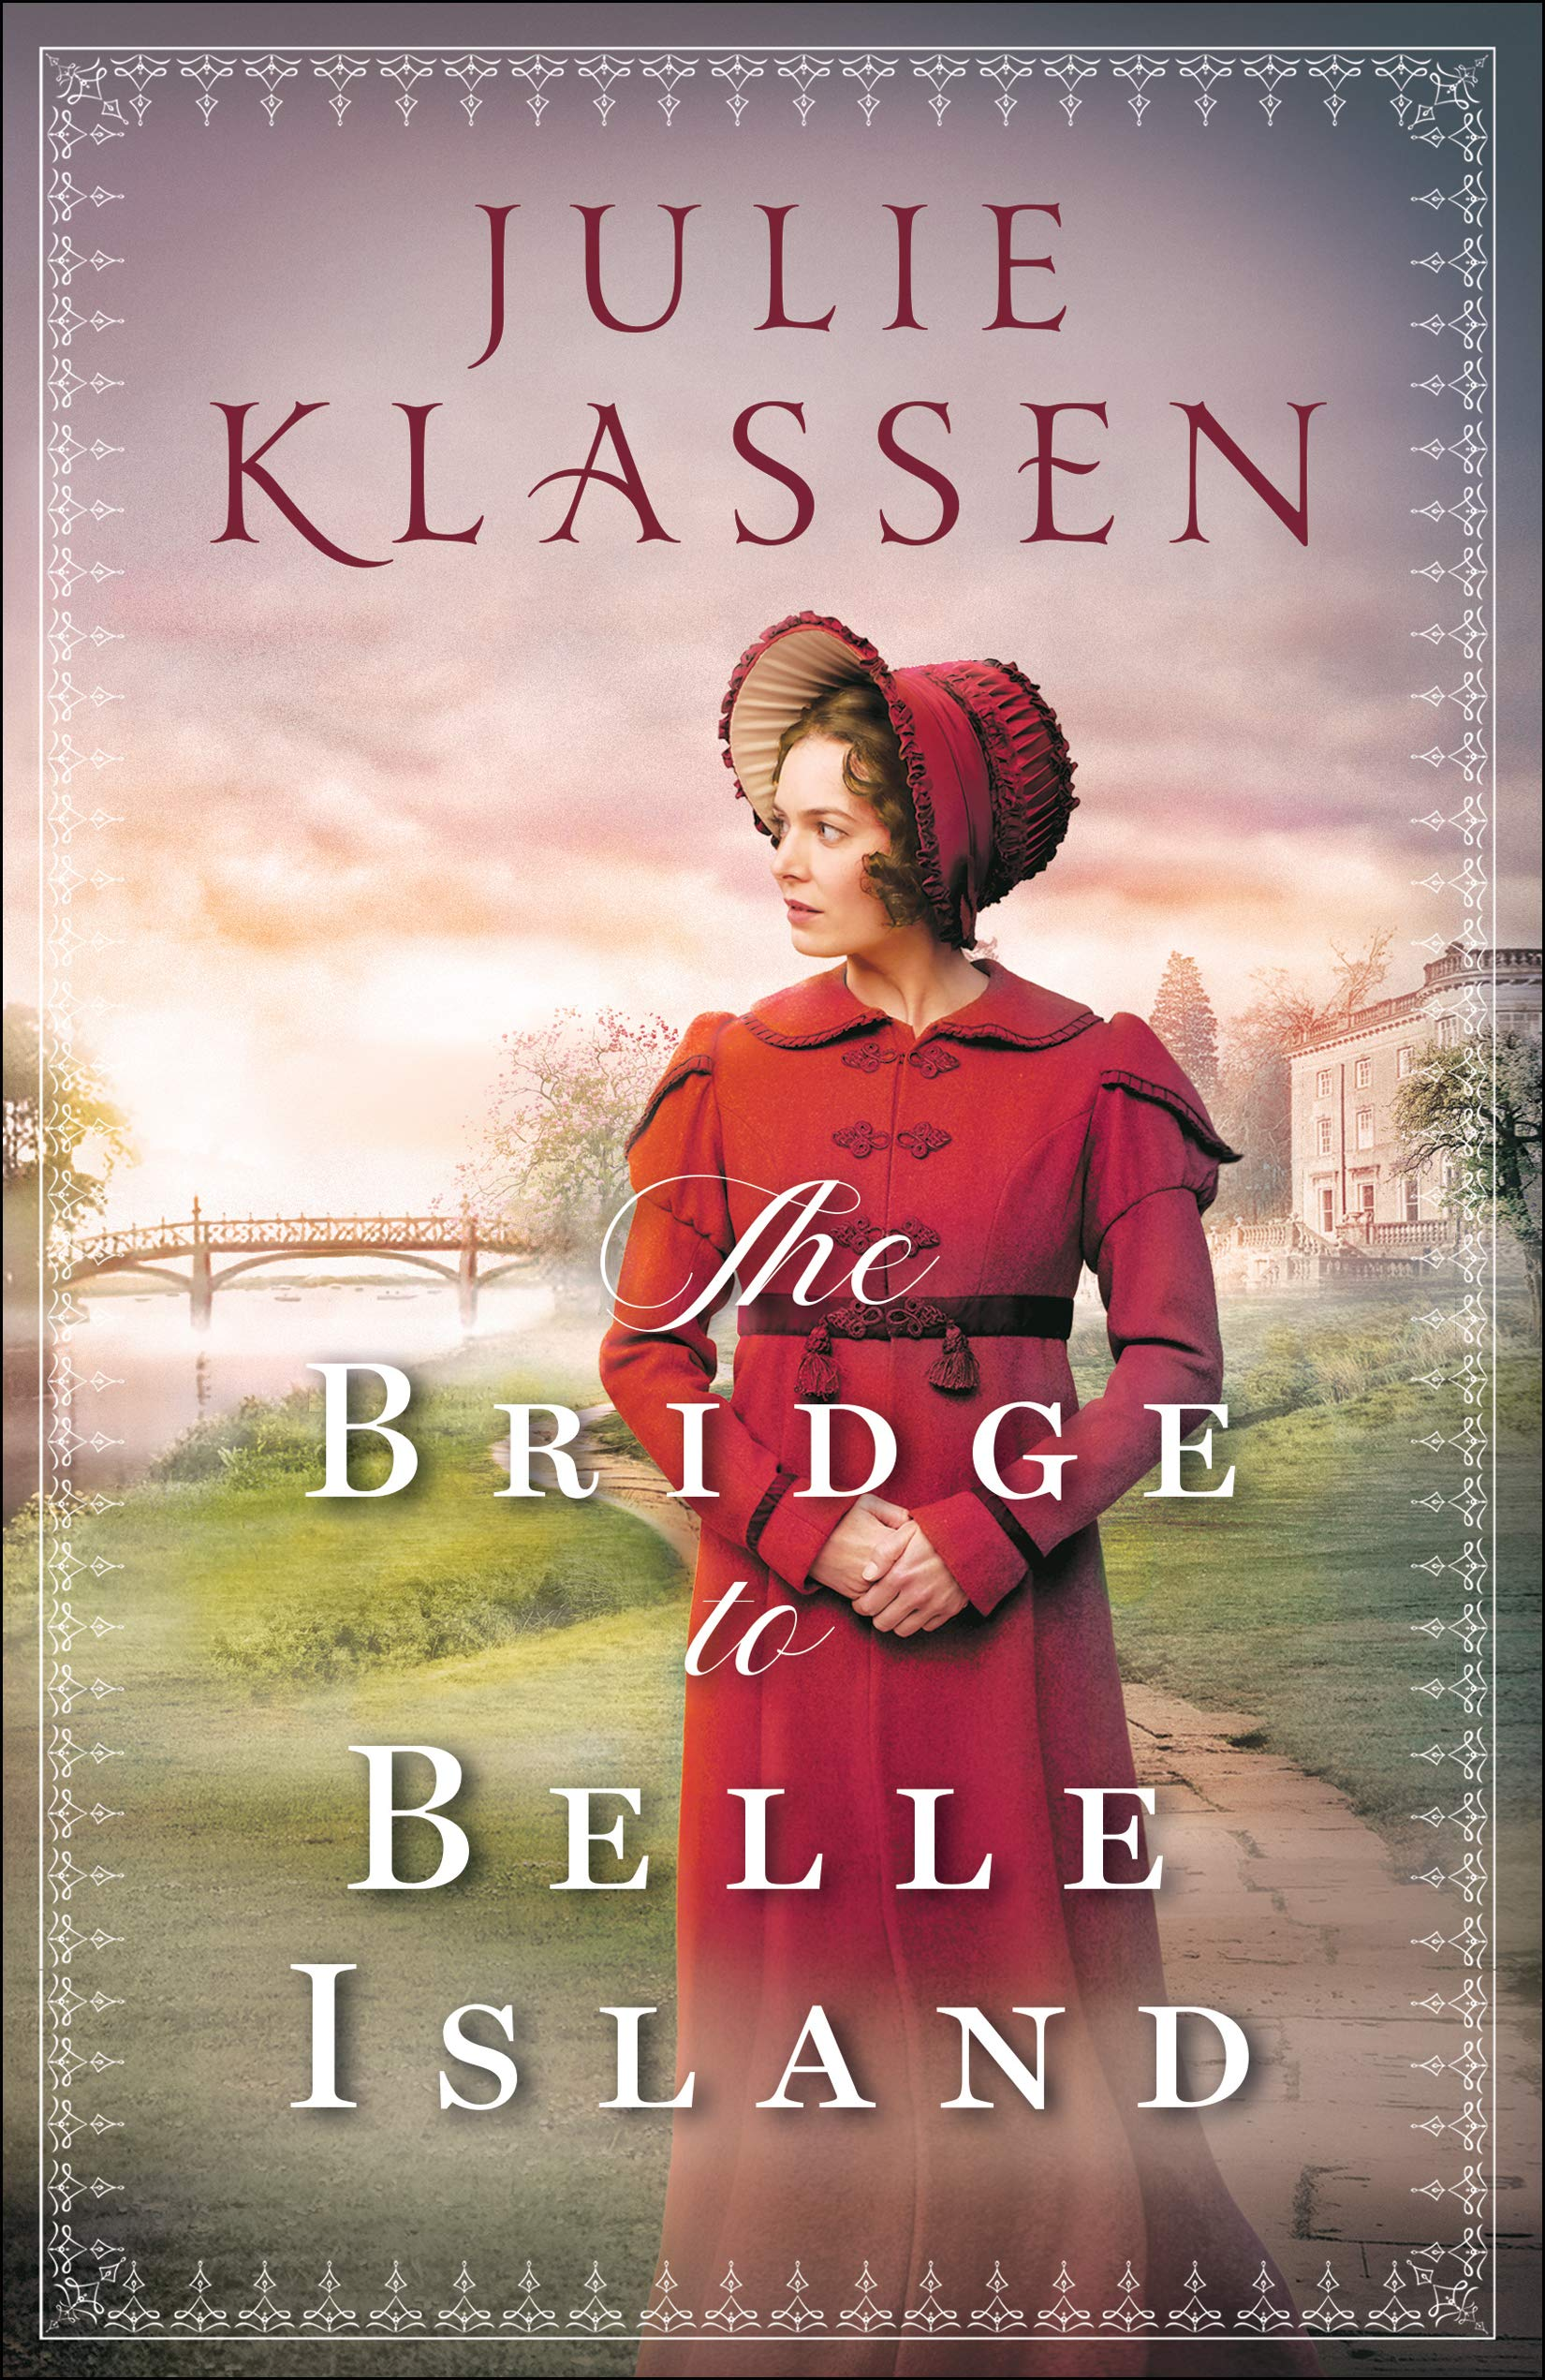 The Bridge to Belle Island, by Julie Klassen (2019)